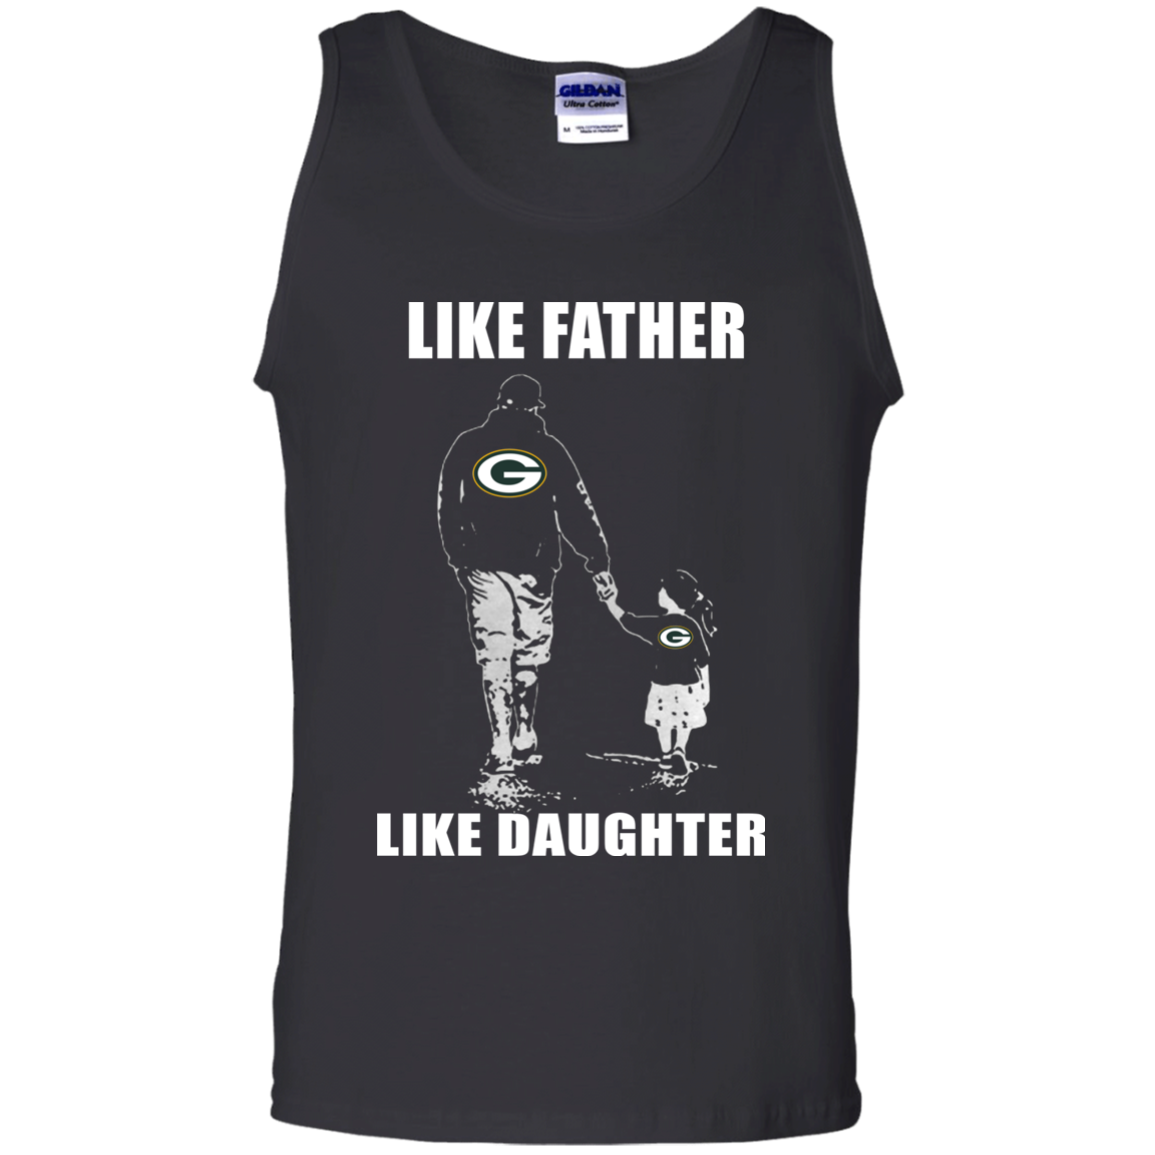 f6acc34ee ... Like Father Like Daughter – Green Bay Packers T Shirt G220 Gildan 100%  Cotton Tank ...